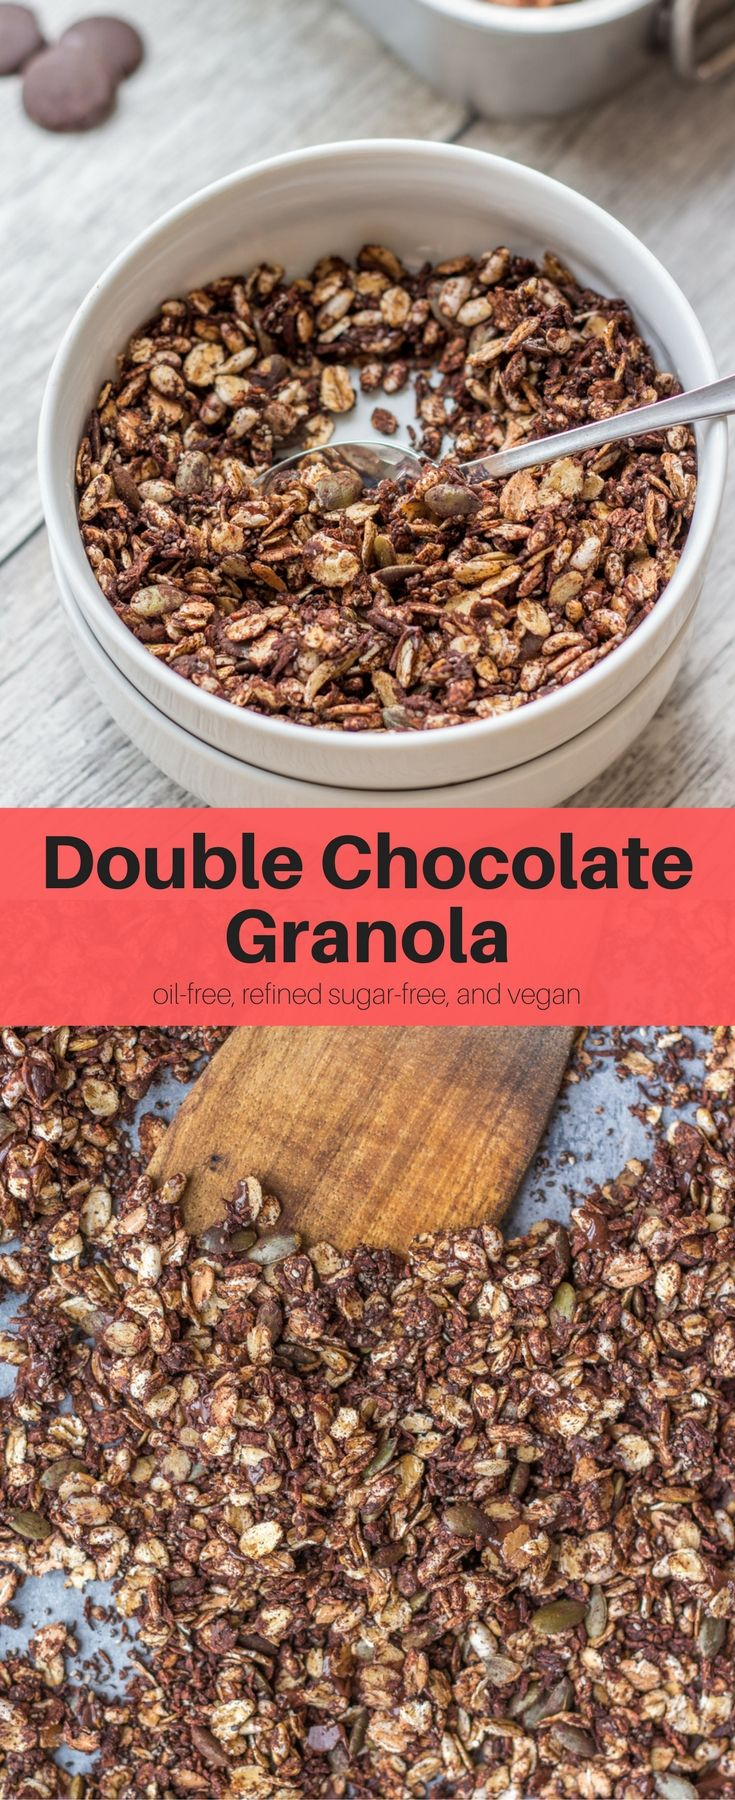 This super simple Double Chocolate Granola is perfect for breakfast. It's crunchy, healthy, and tasty. Oil-free, refined-sugar free, and vegan. #breakfast #vegan #recipes #healthy